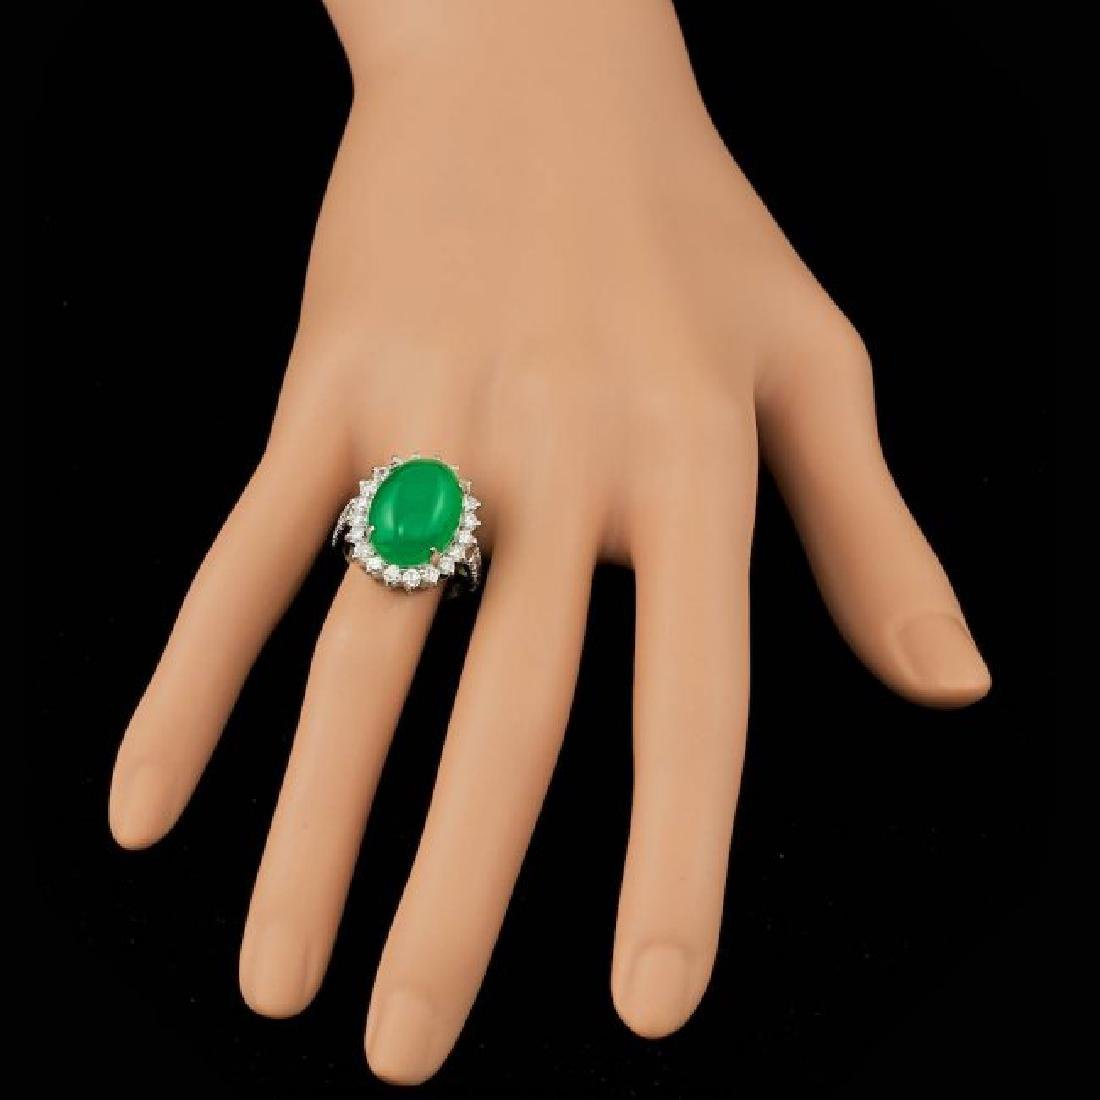 14k White Gold 9.50ct Jade 1.40ct Diamond Ring - 4